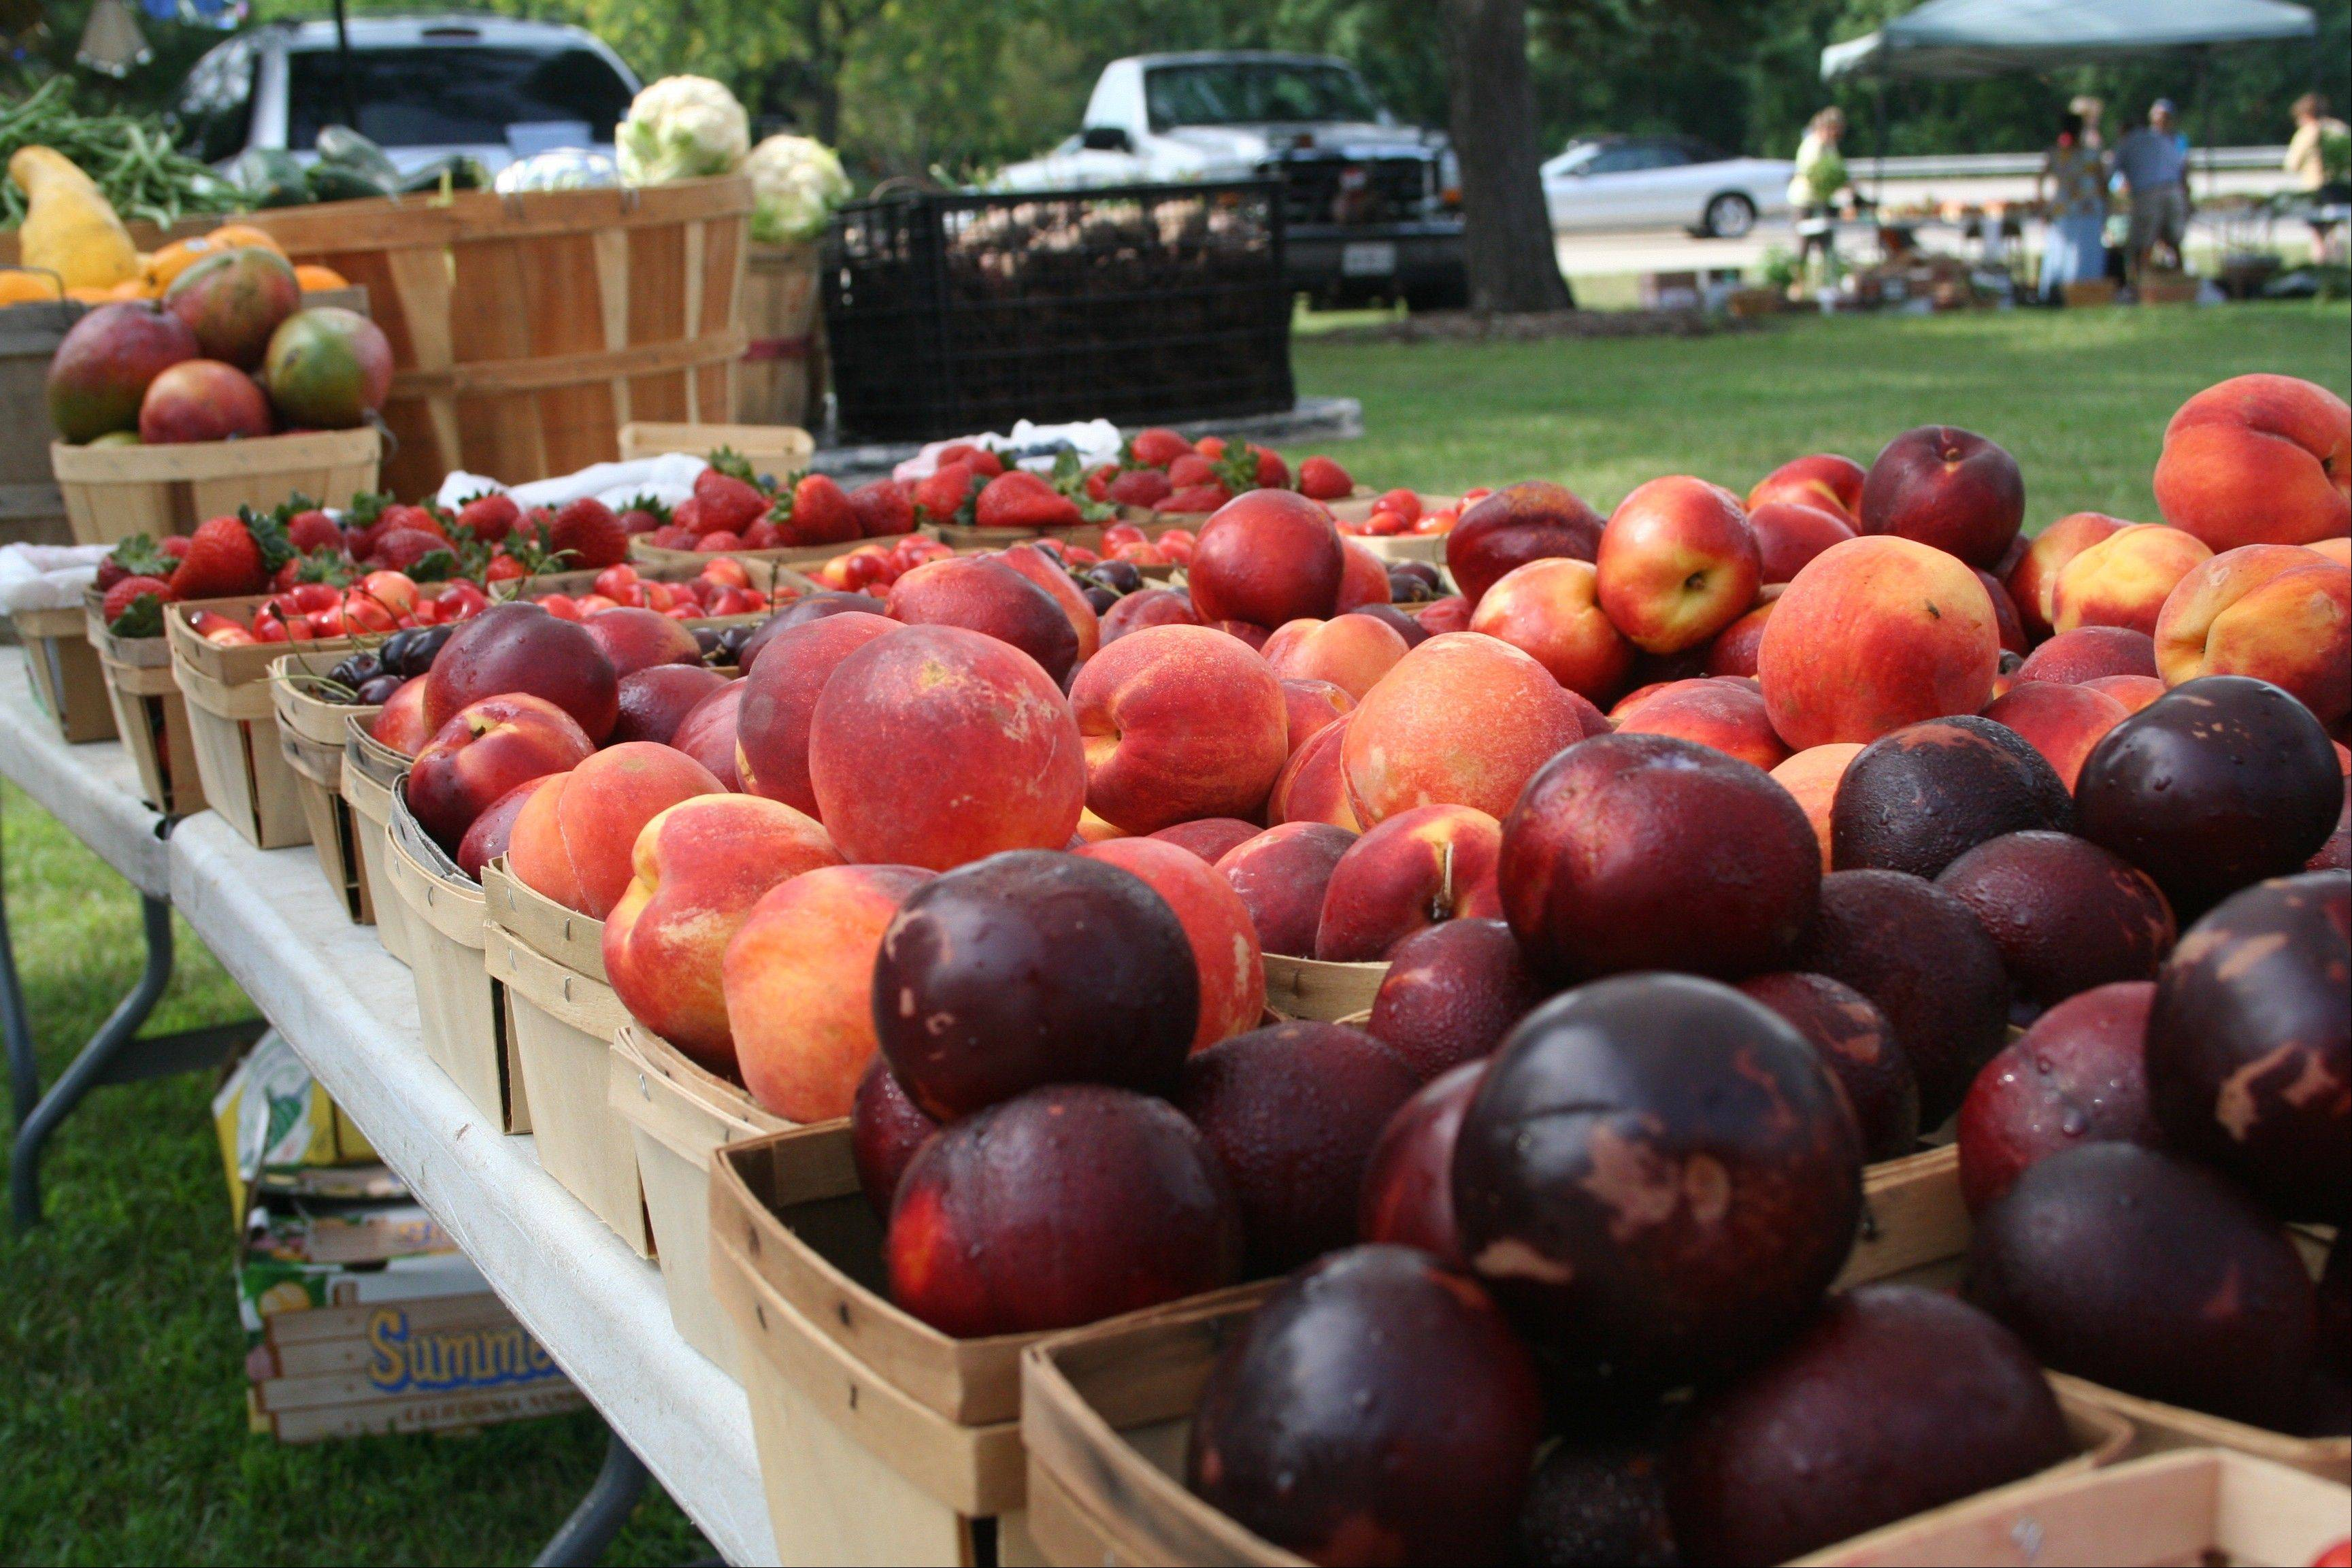 Bountiful fruits, vegetables and more await visitors to the Gurnee Park District's weekly farmers market starting June 8.